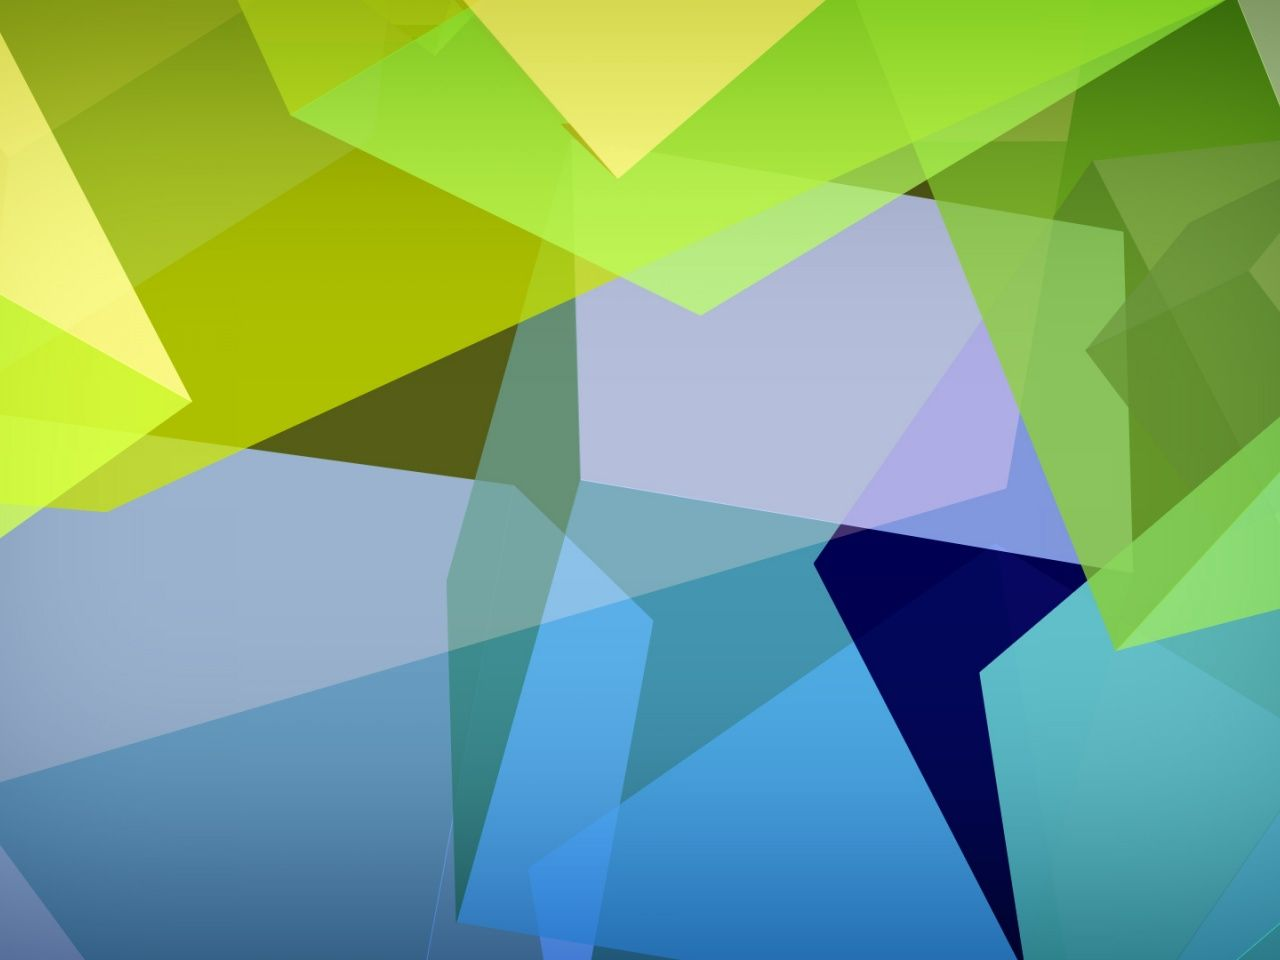 geometric shapes wallpapers top